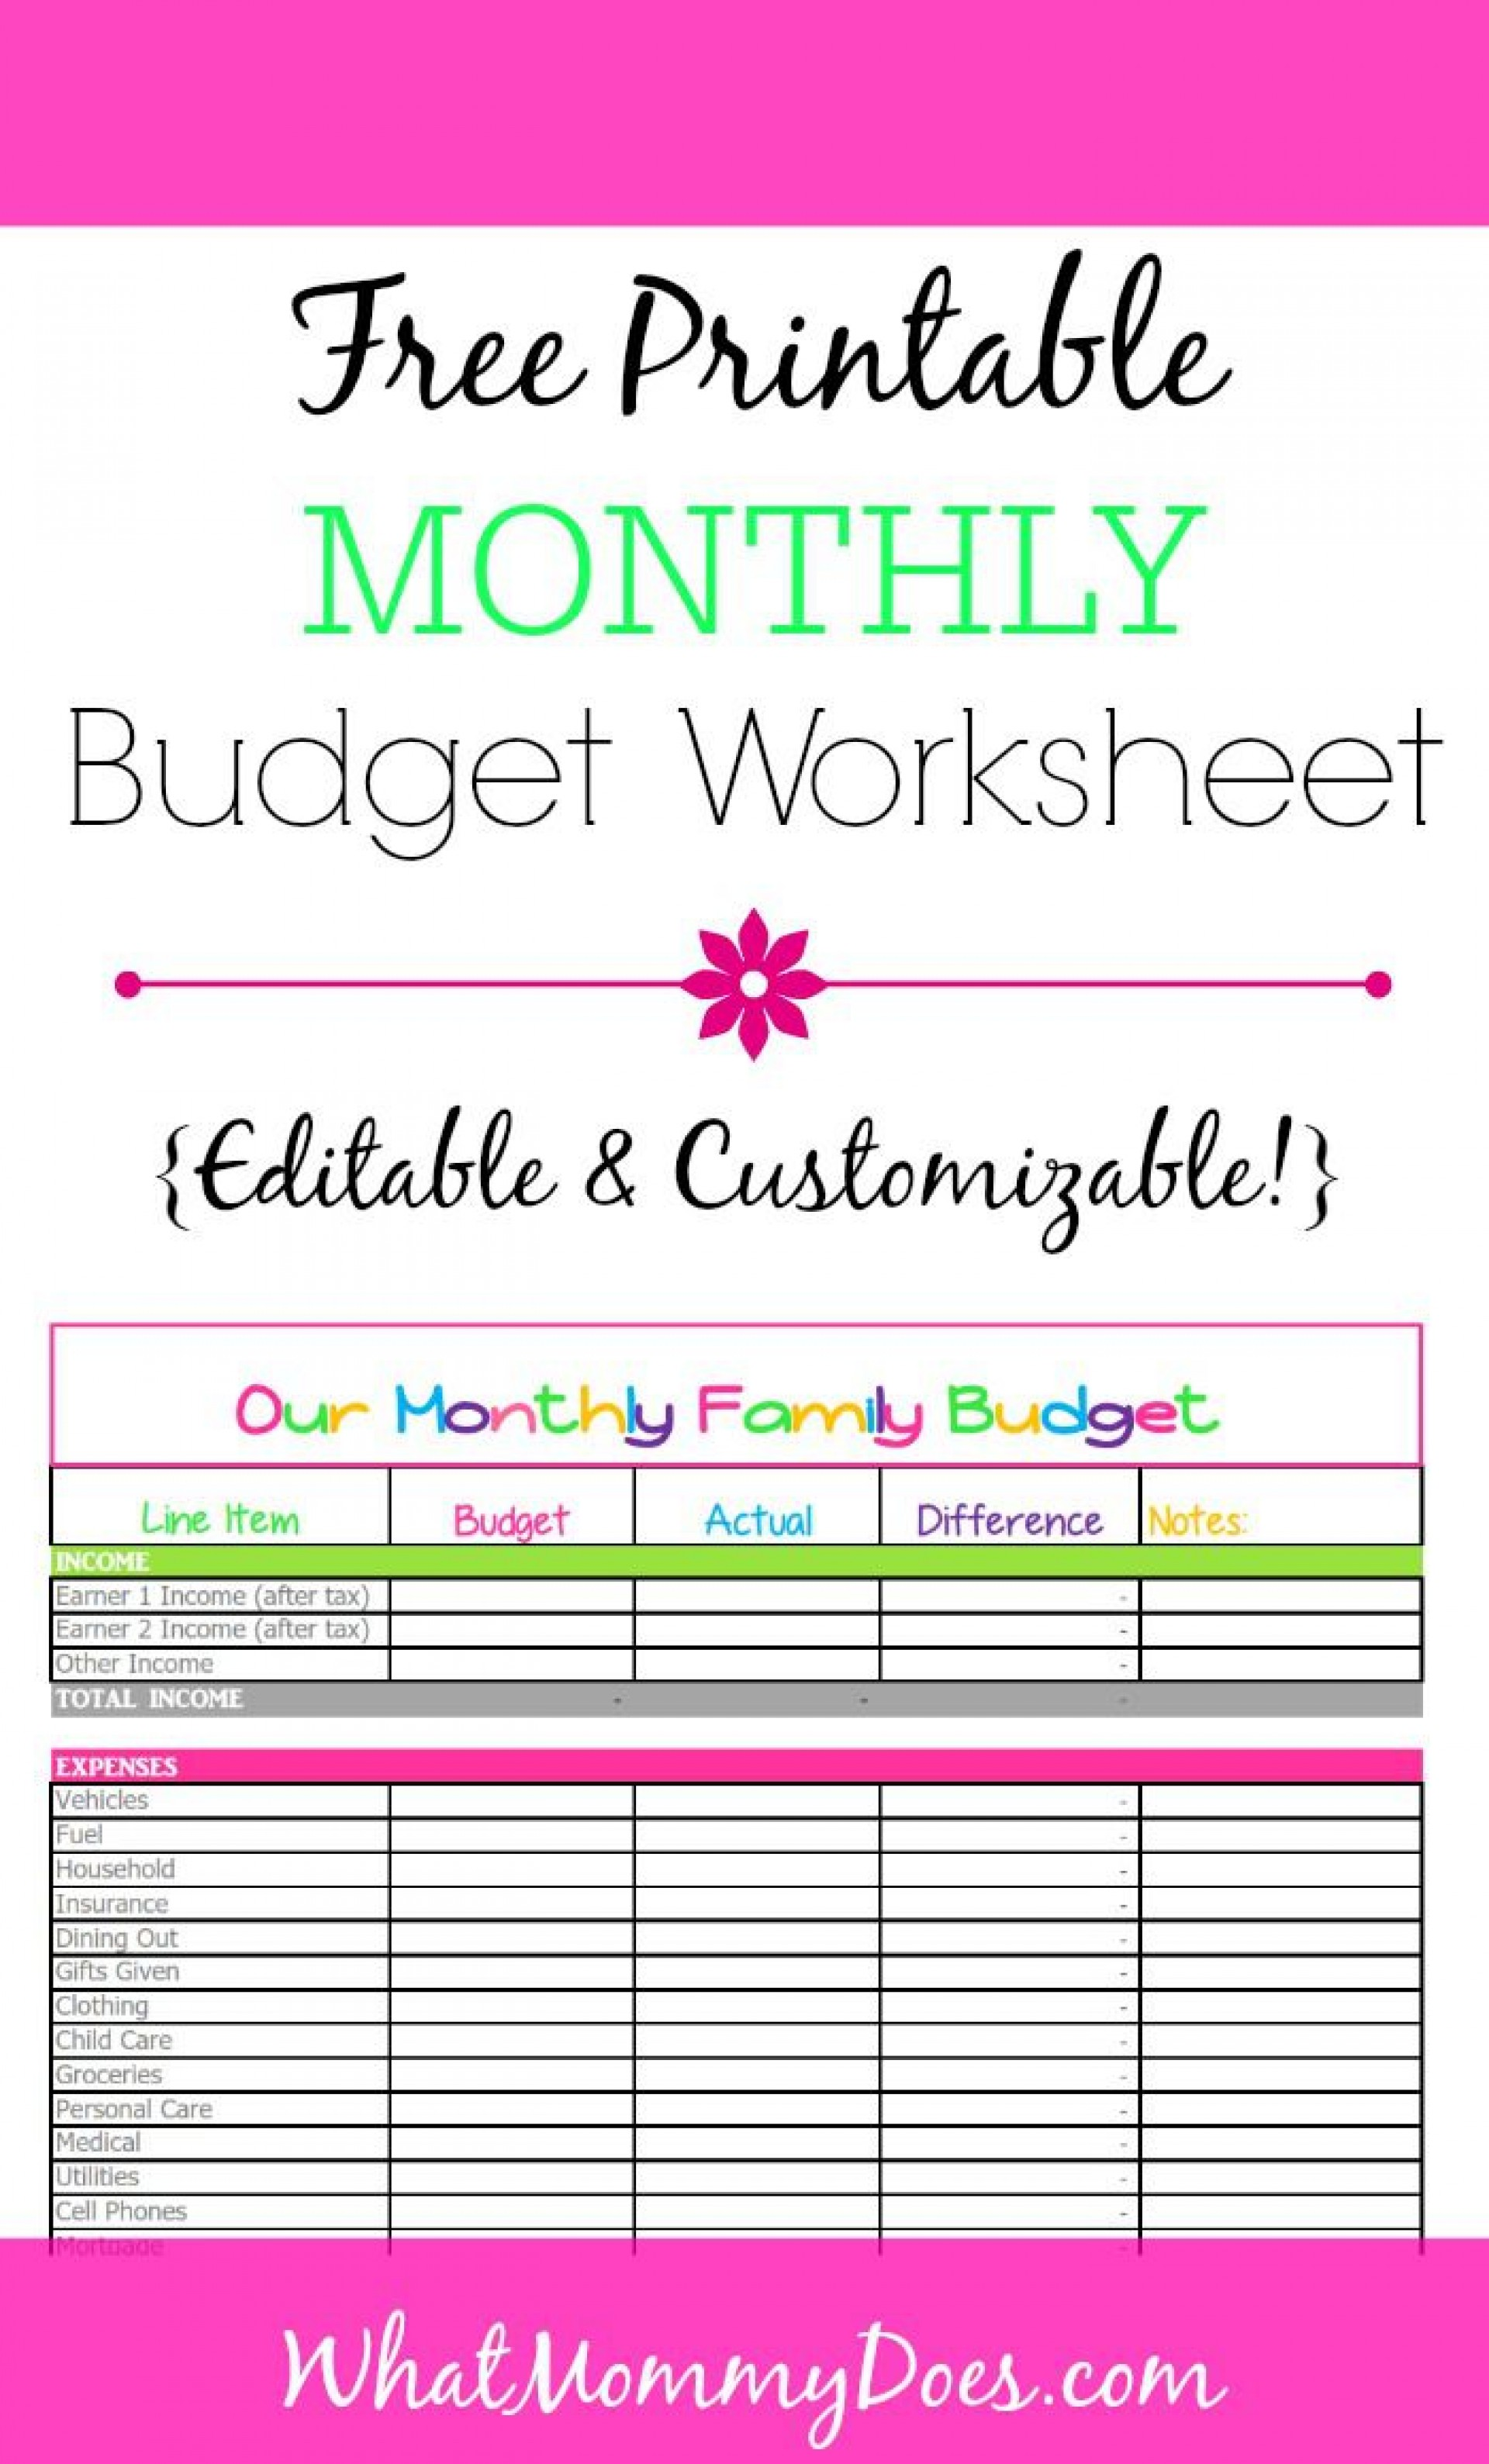 007 Fantastic Free Printable Home Budget Template Highest Clarity  Sheet Form1920